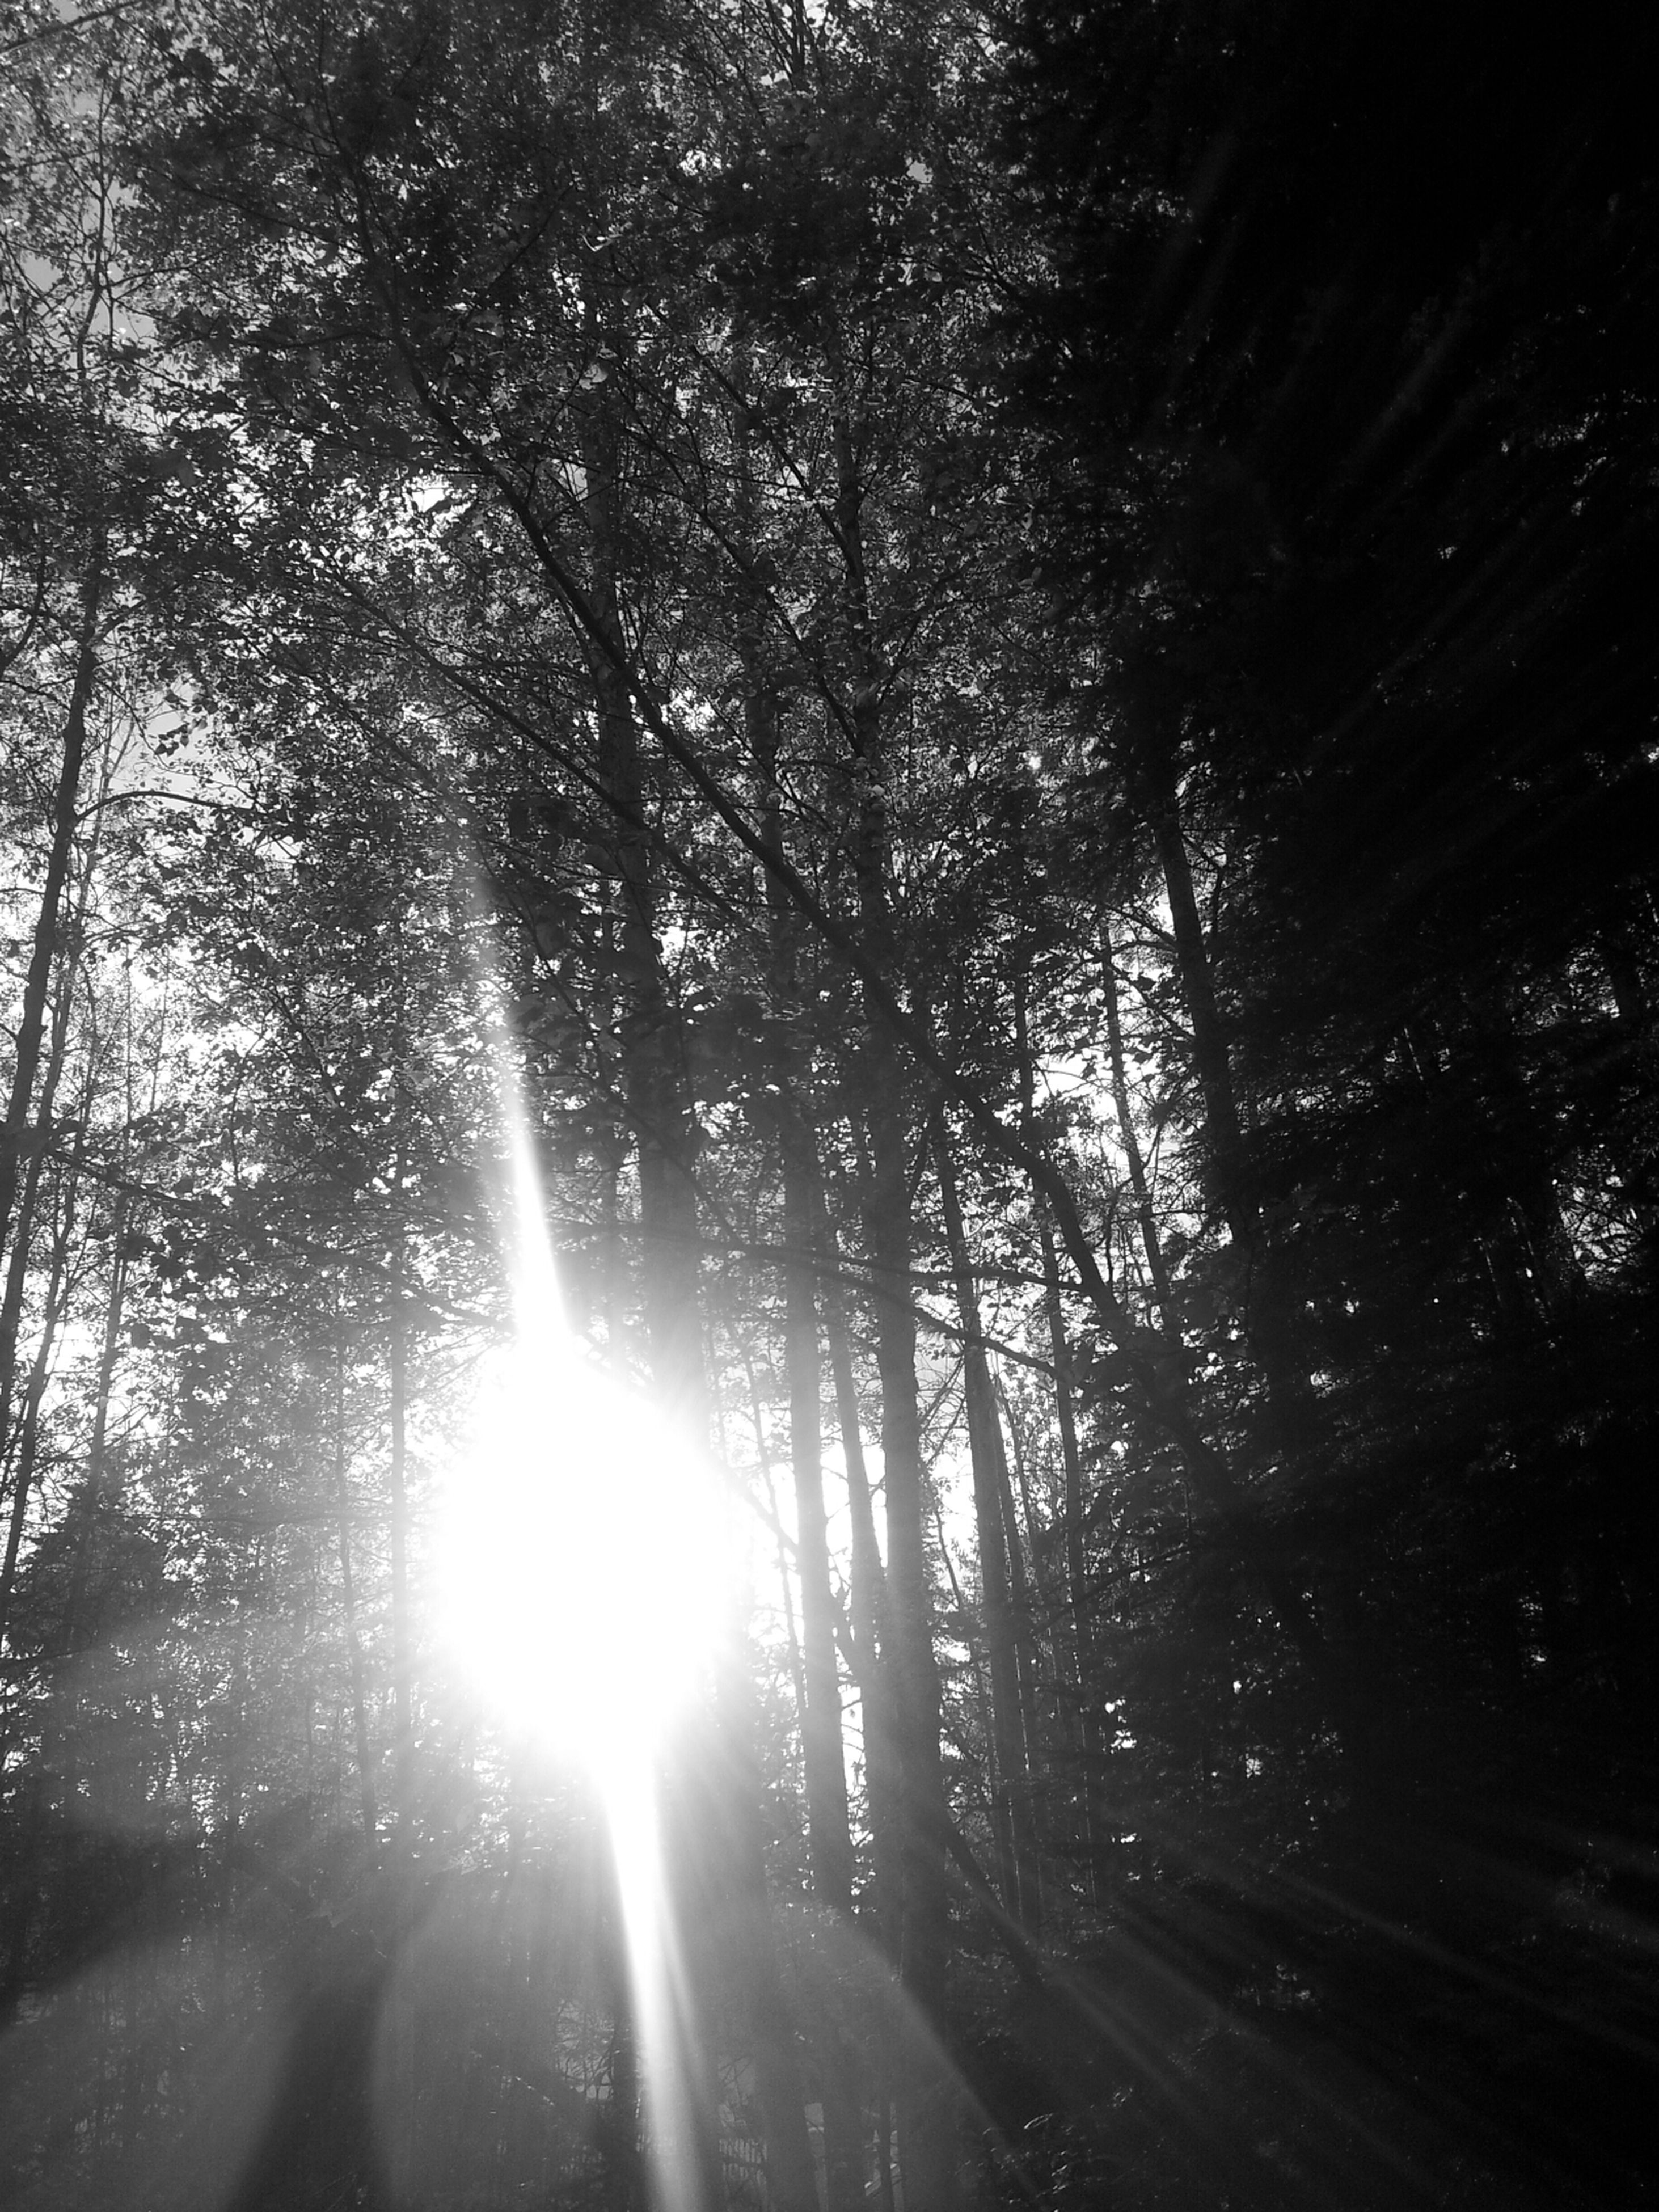 tree, silhouette, low angle view, growth, sunlight, nature, sunbeam, lens flare, night, branch, sun, outdoors, tranquility, forest, back lit, beauty in nature, no people, sky, glowing